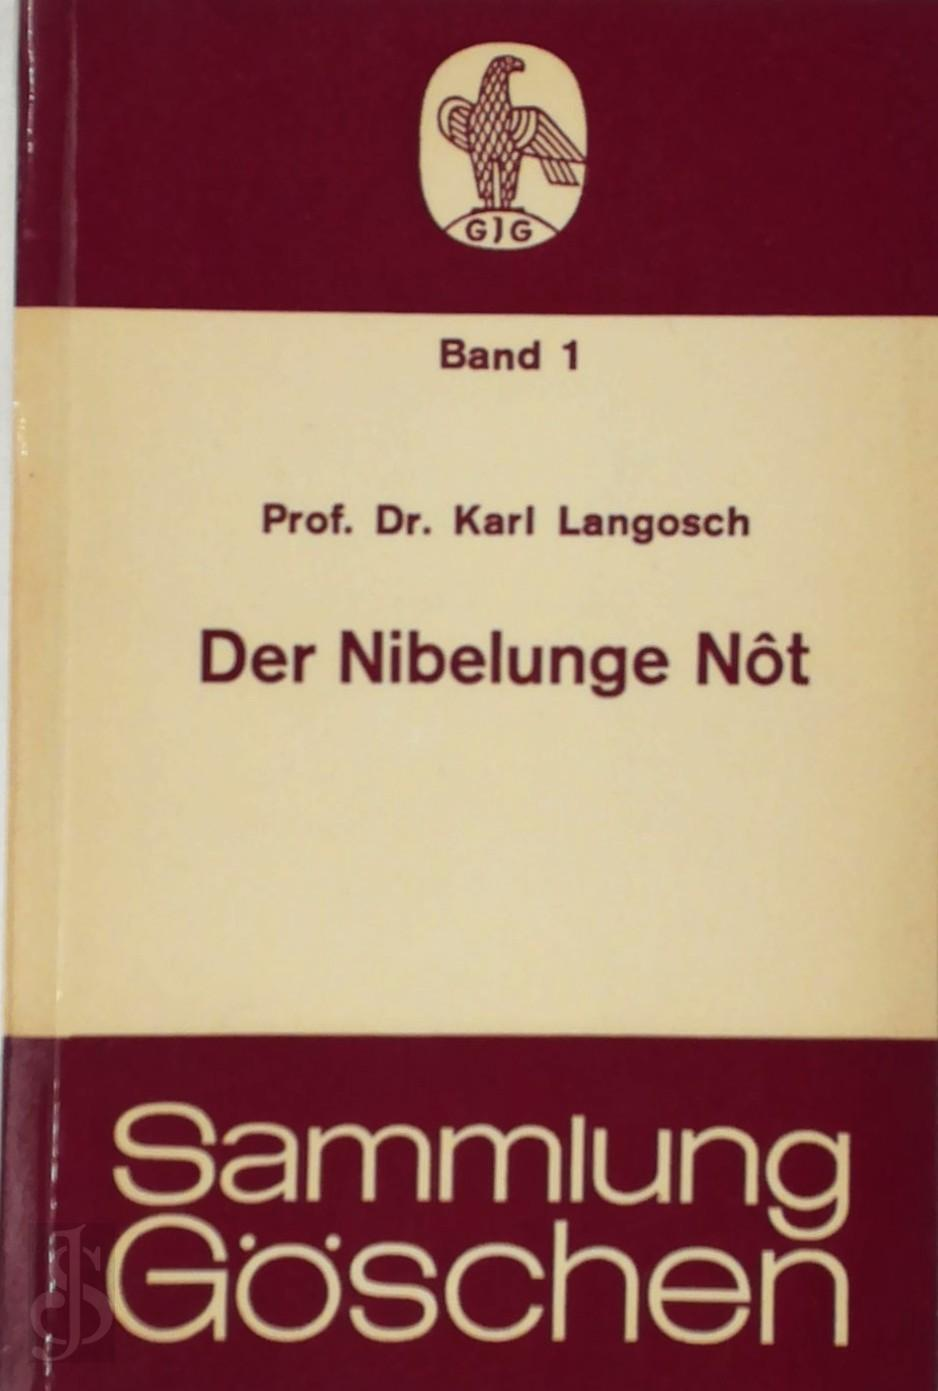 Der Nibelunge Not in Auswah...